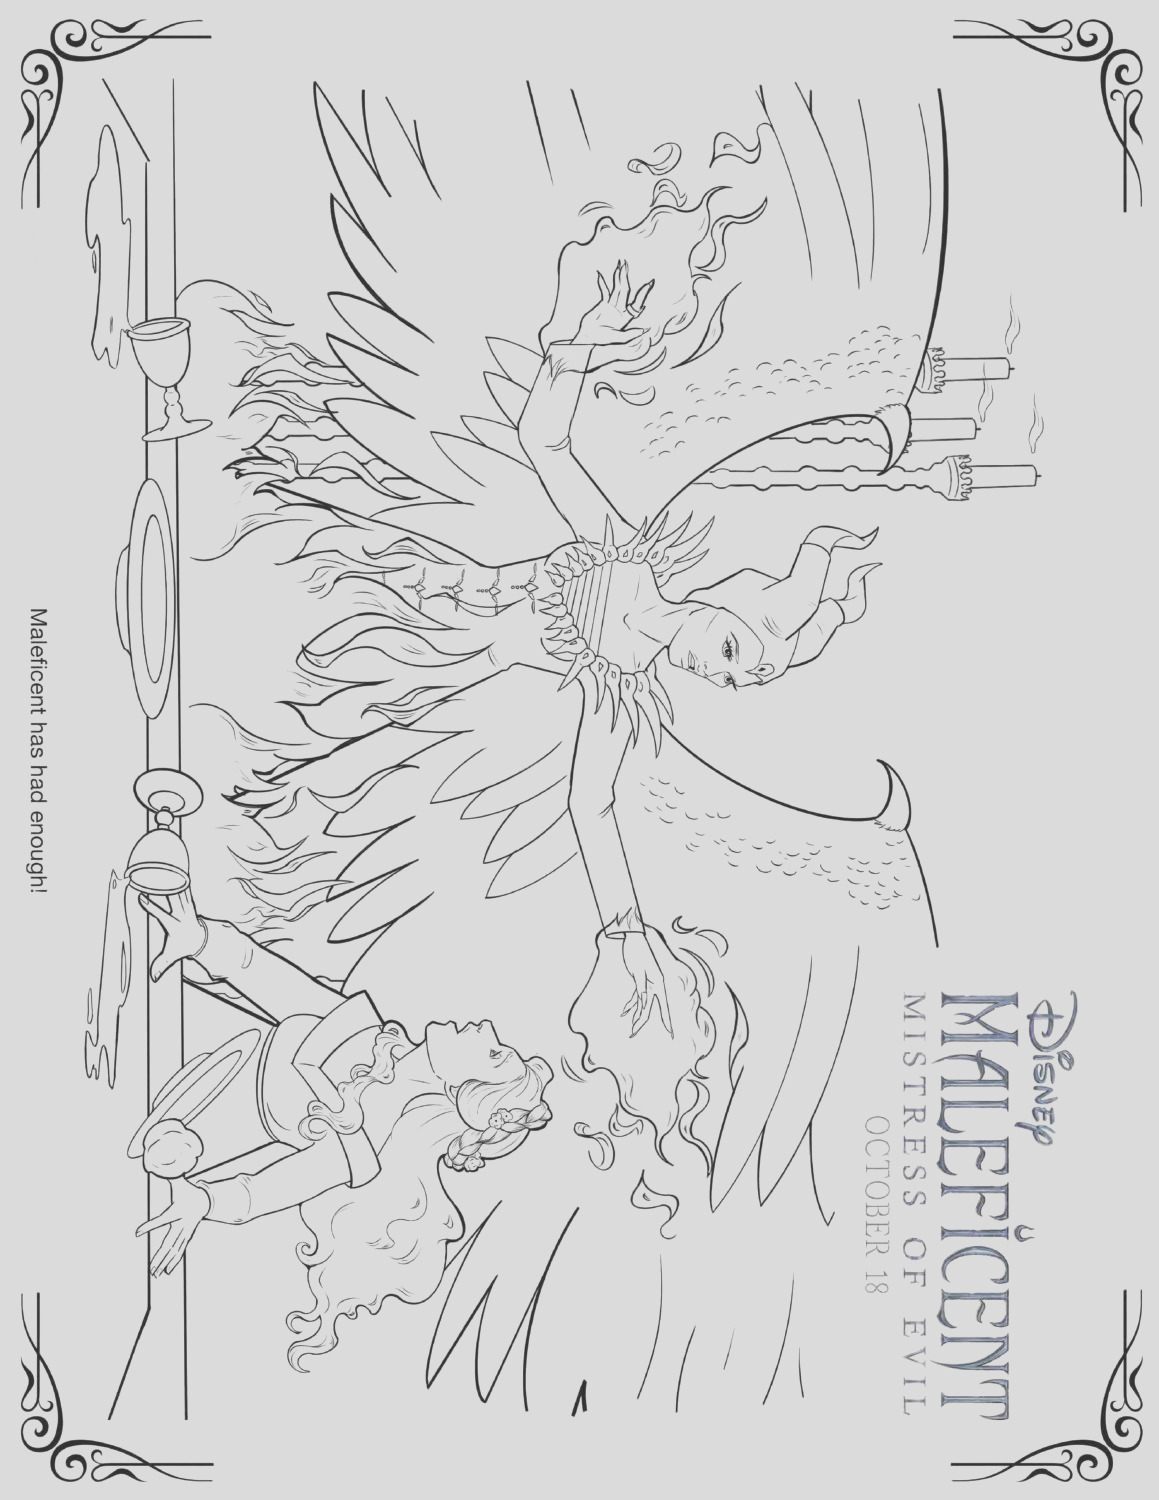 maleficent 2 coloring pages and activity sheets